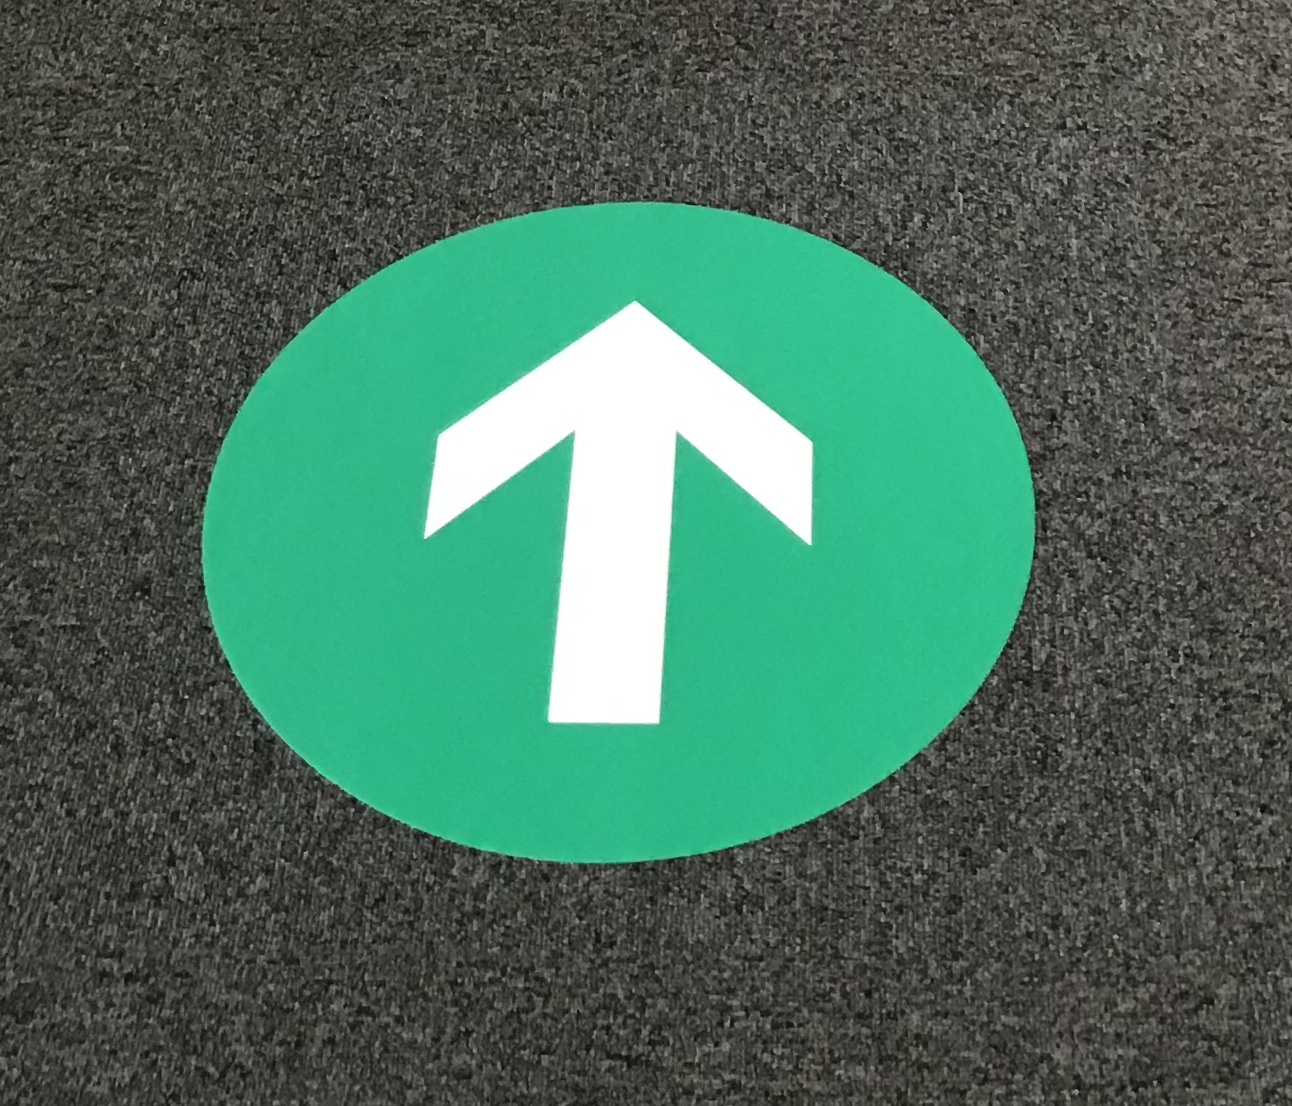 white arrow on a green circle showing the direction of traffic inside the library